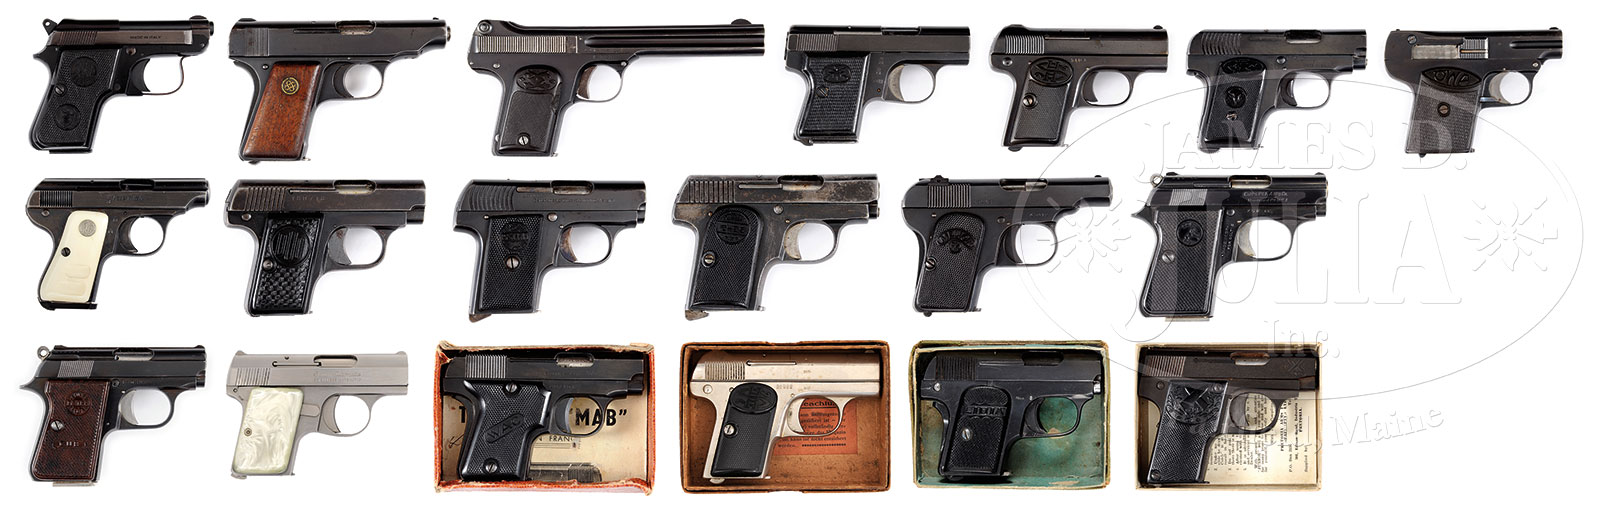 OUTSTANDING LOT OF 19 POCKET PISTOLS FROM  22 TO 25 ACP